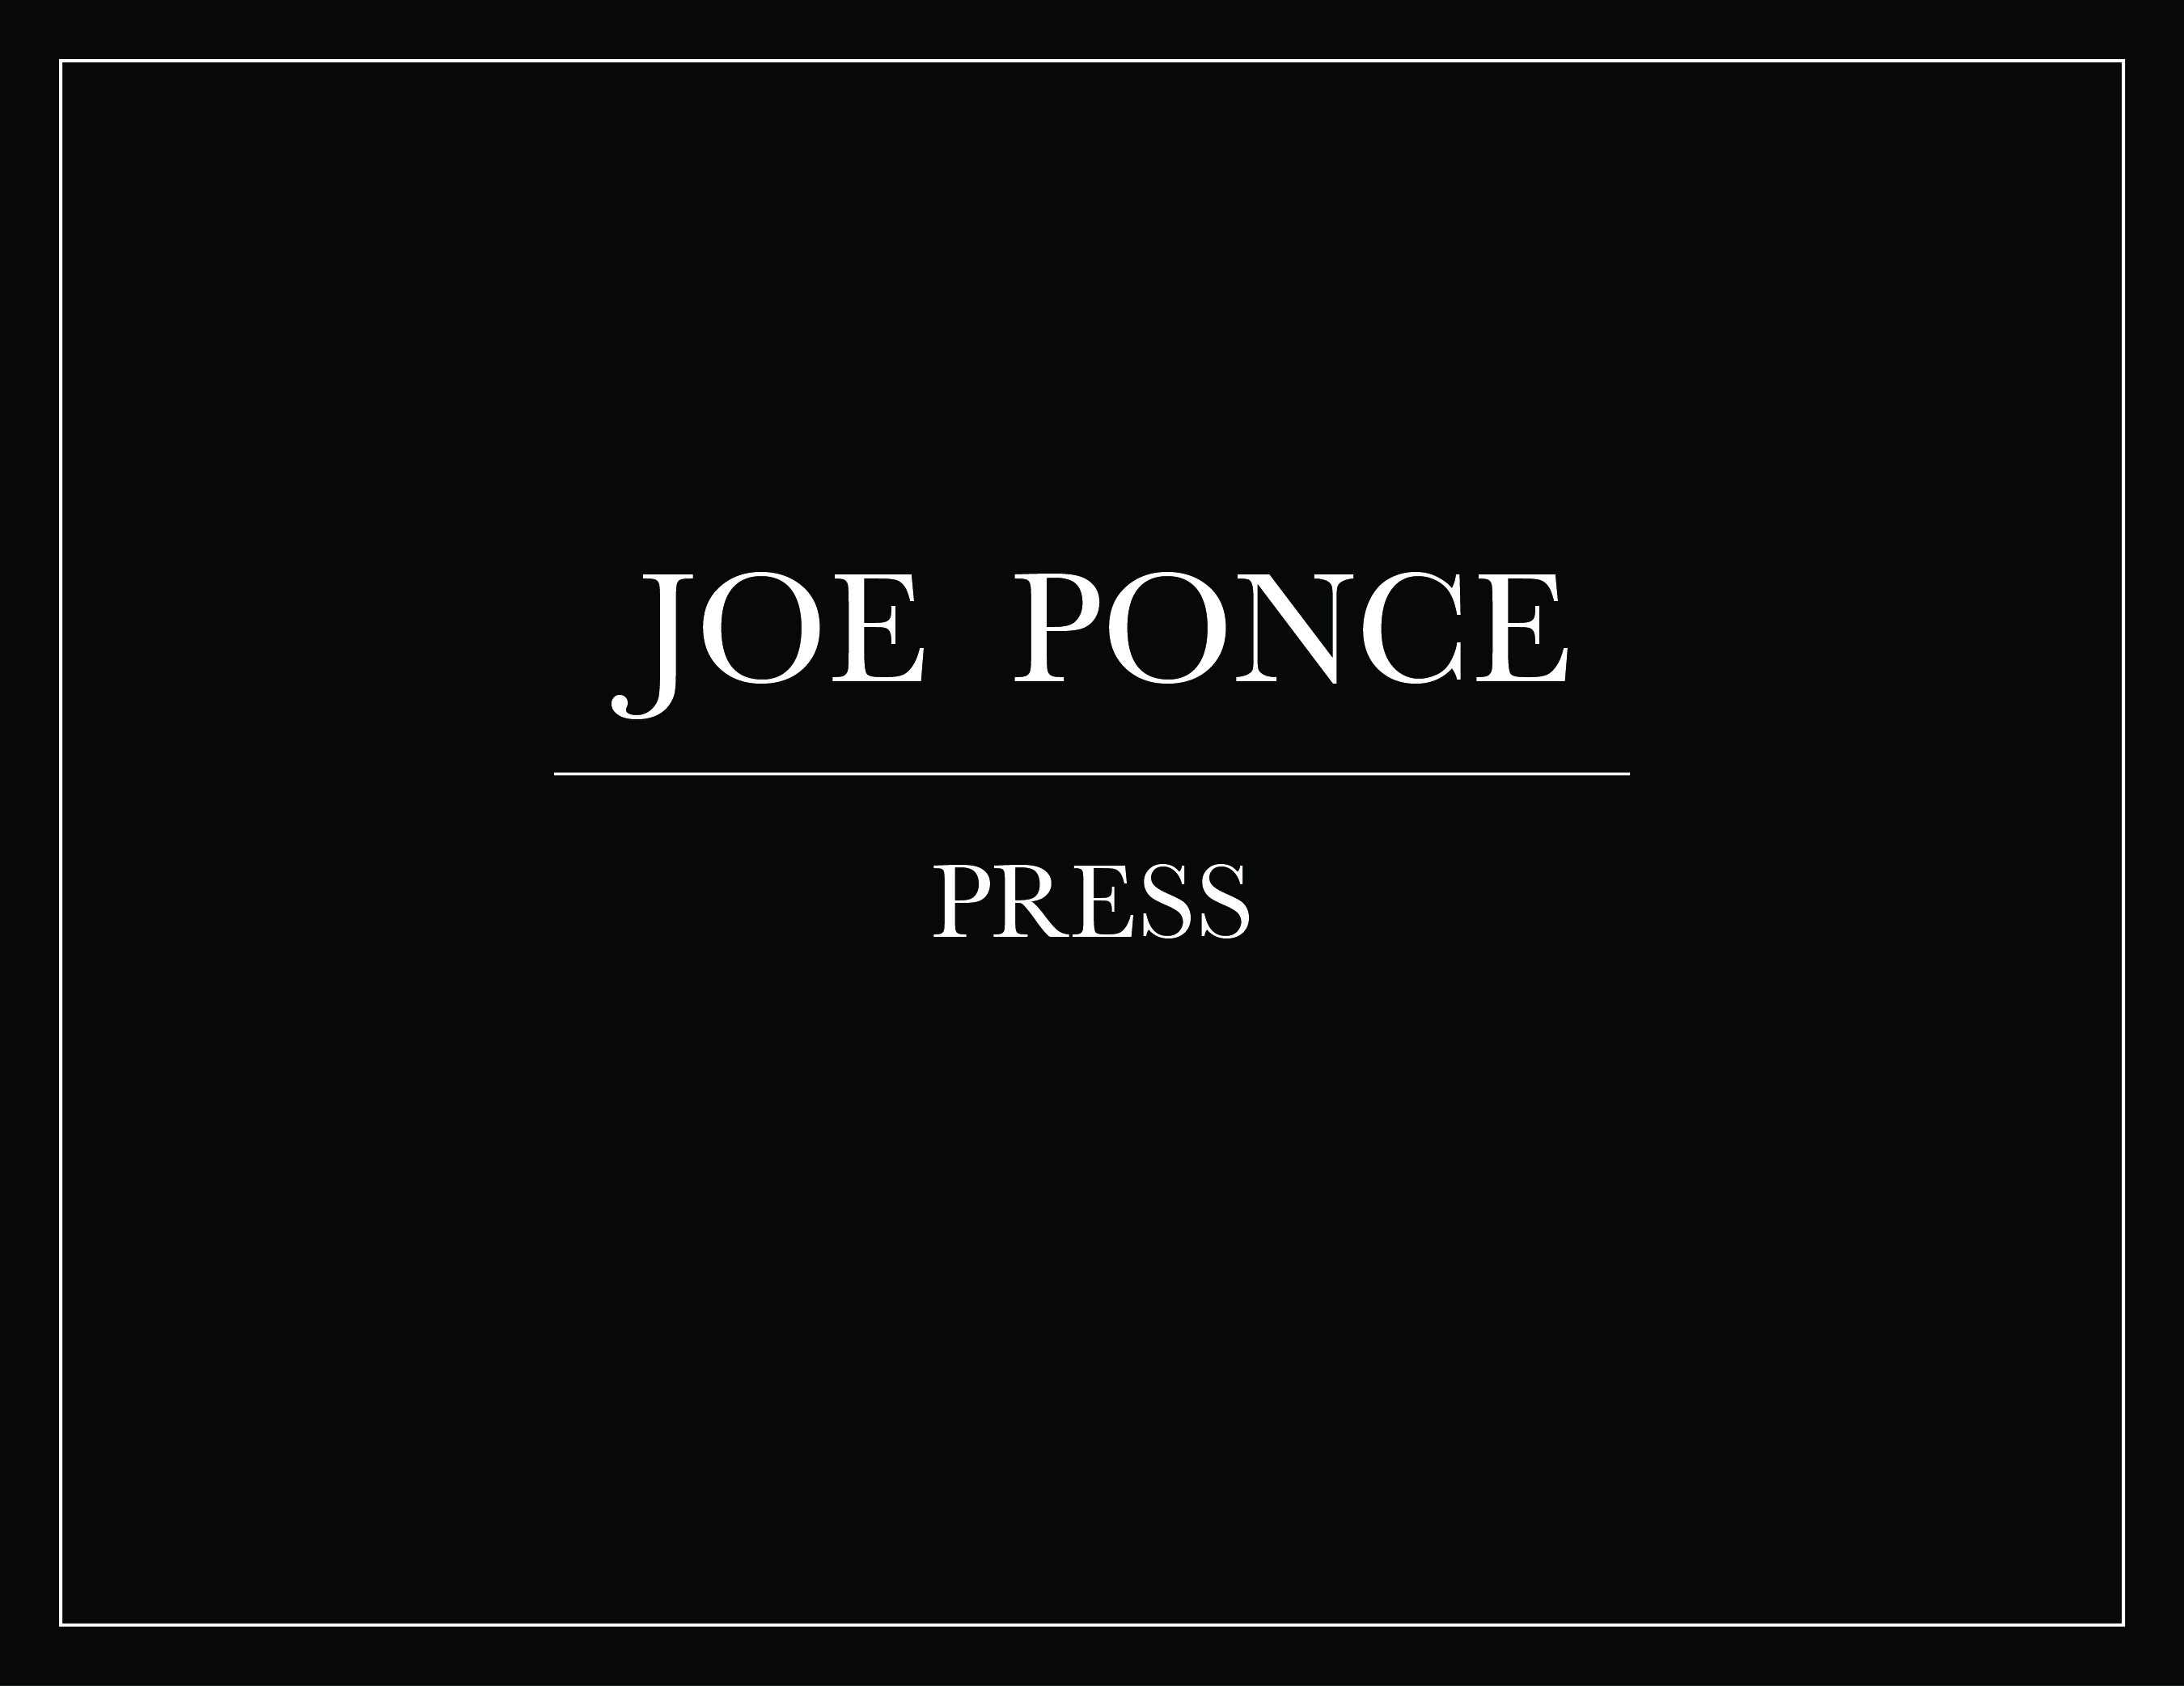 Joe Ponce Press